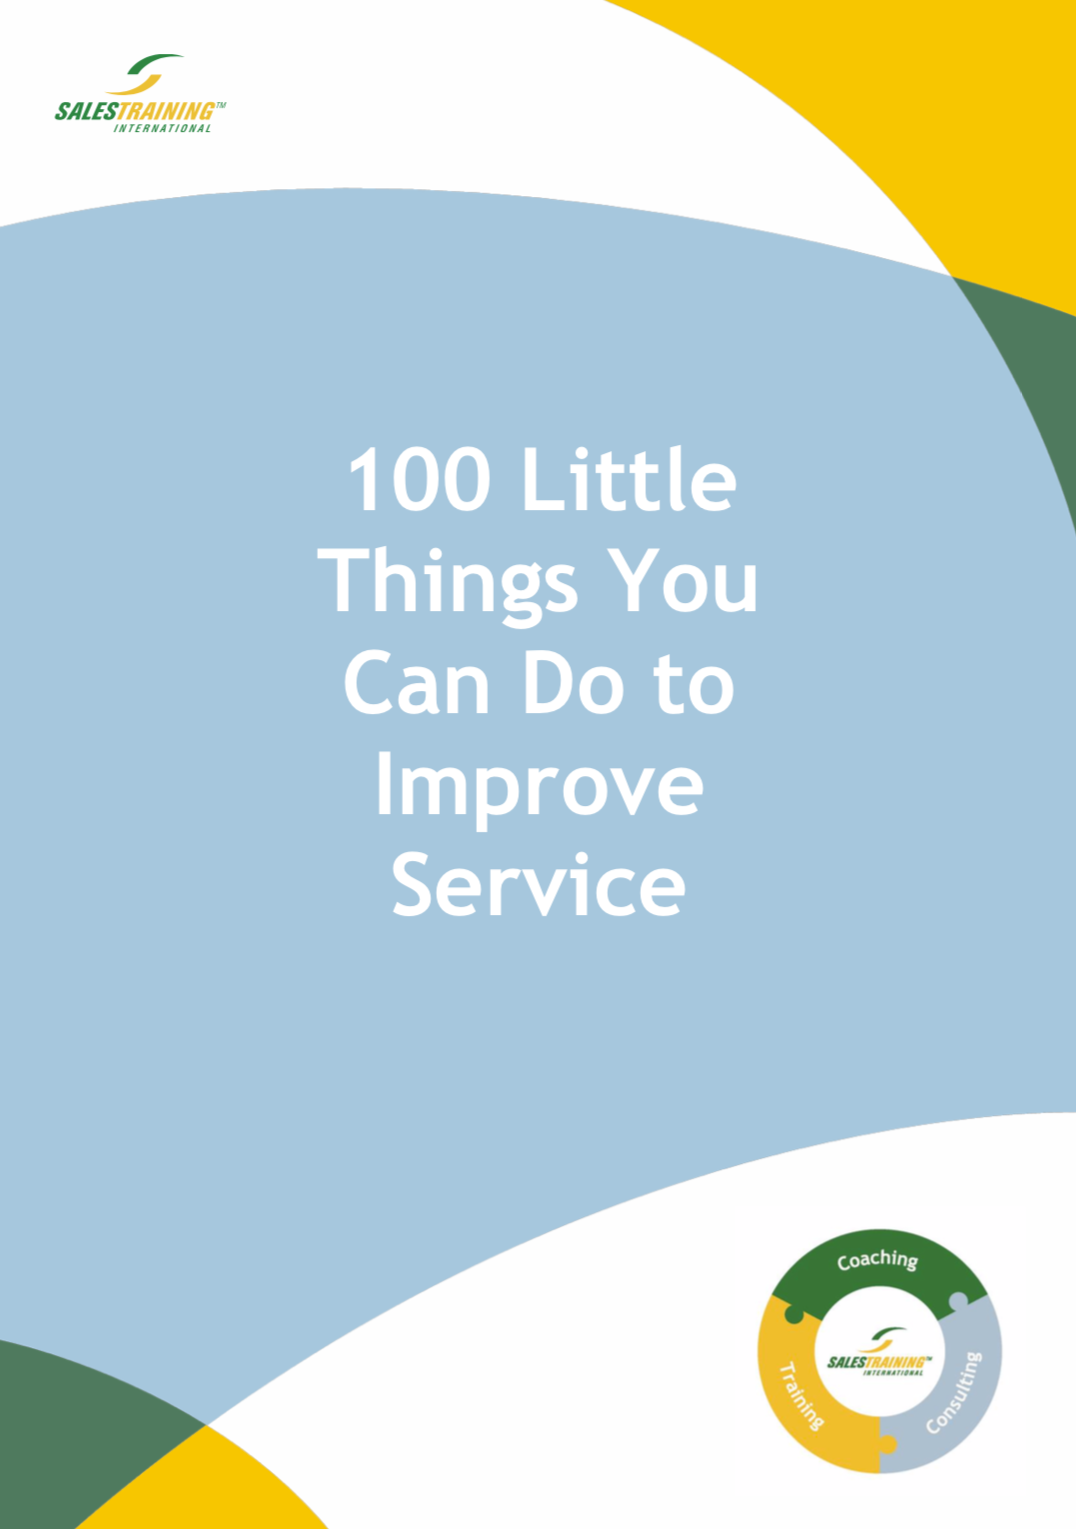 100 Little Things You Can Do to Improve Service